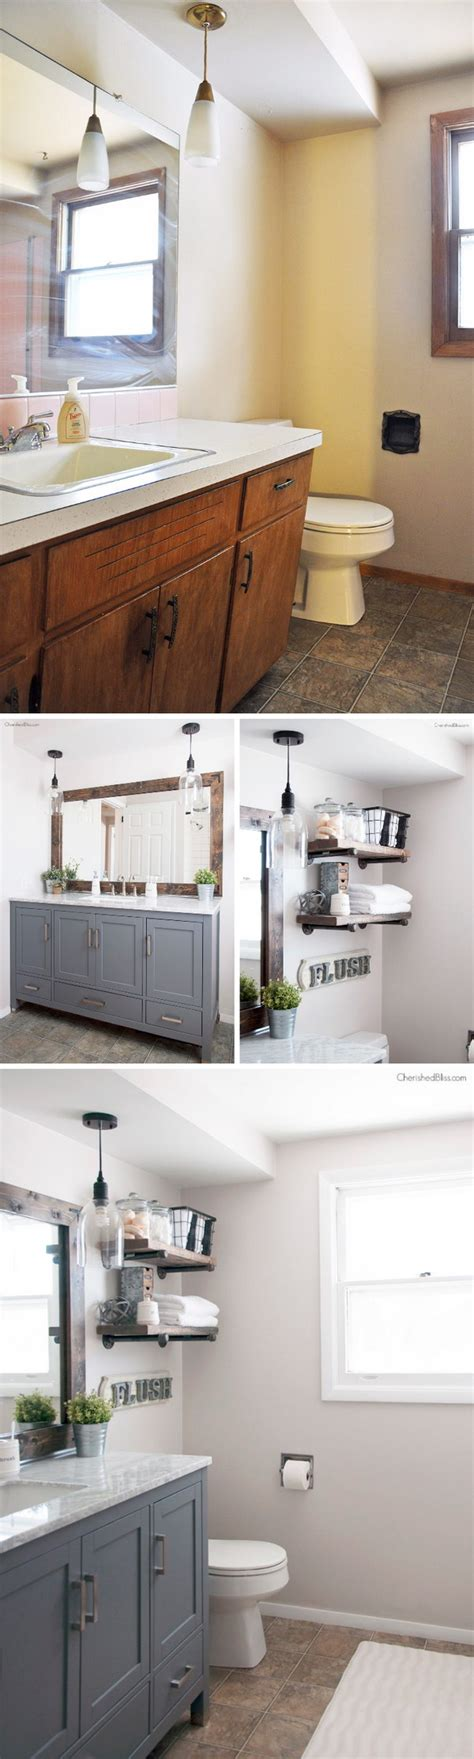 20 amazing pictures of bathroom makeovers with glass tile before and after 20 amazing bathroom makeovers noted list